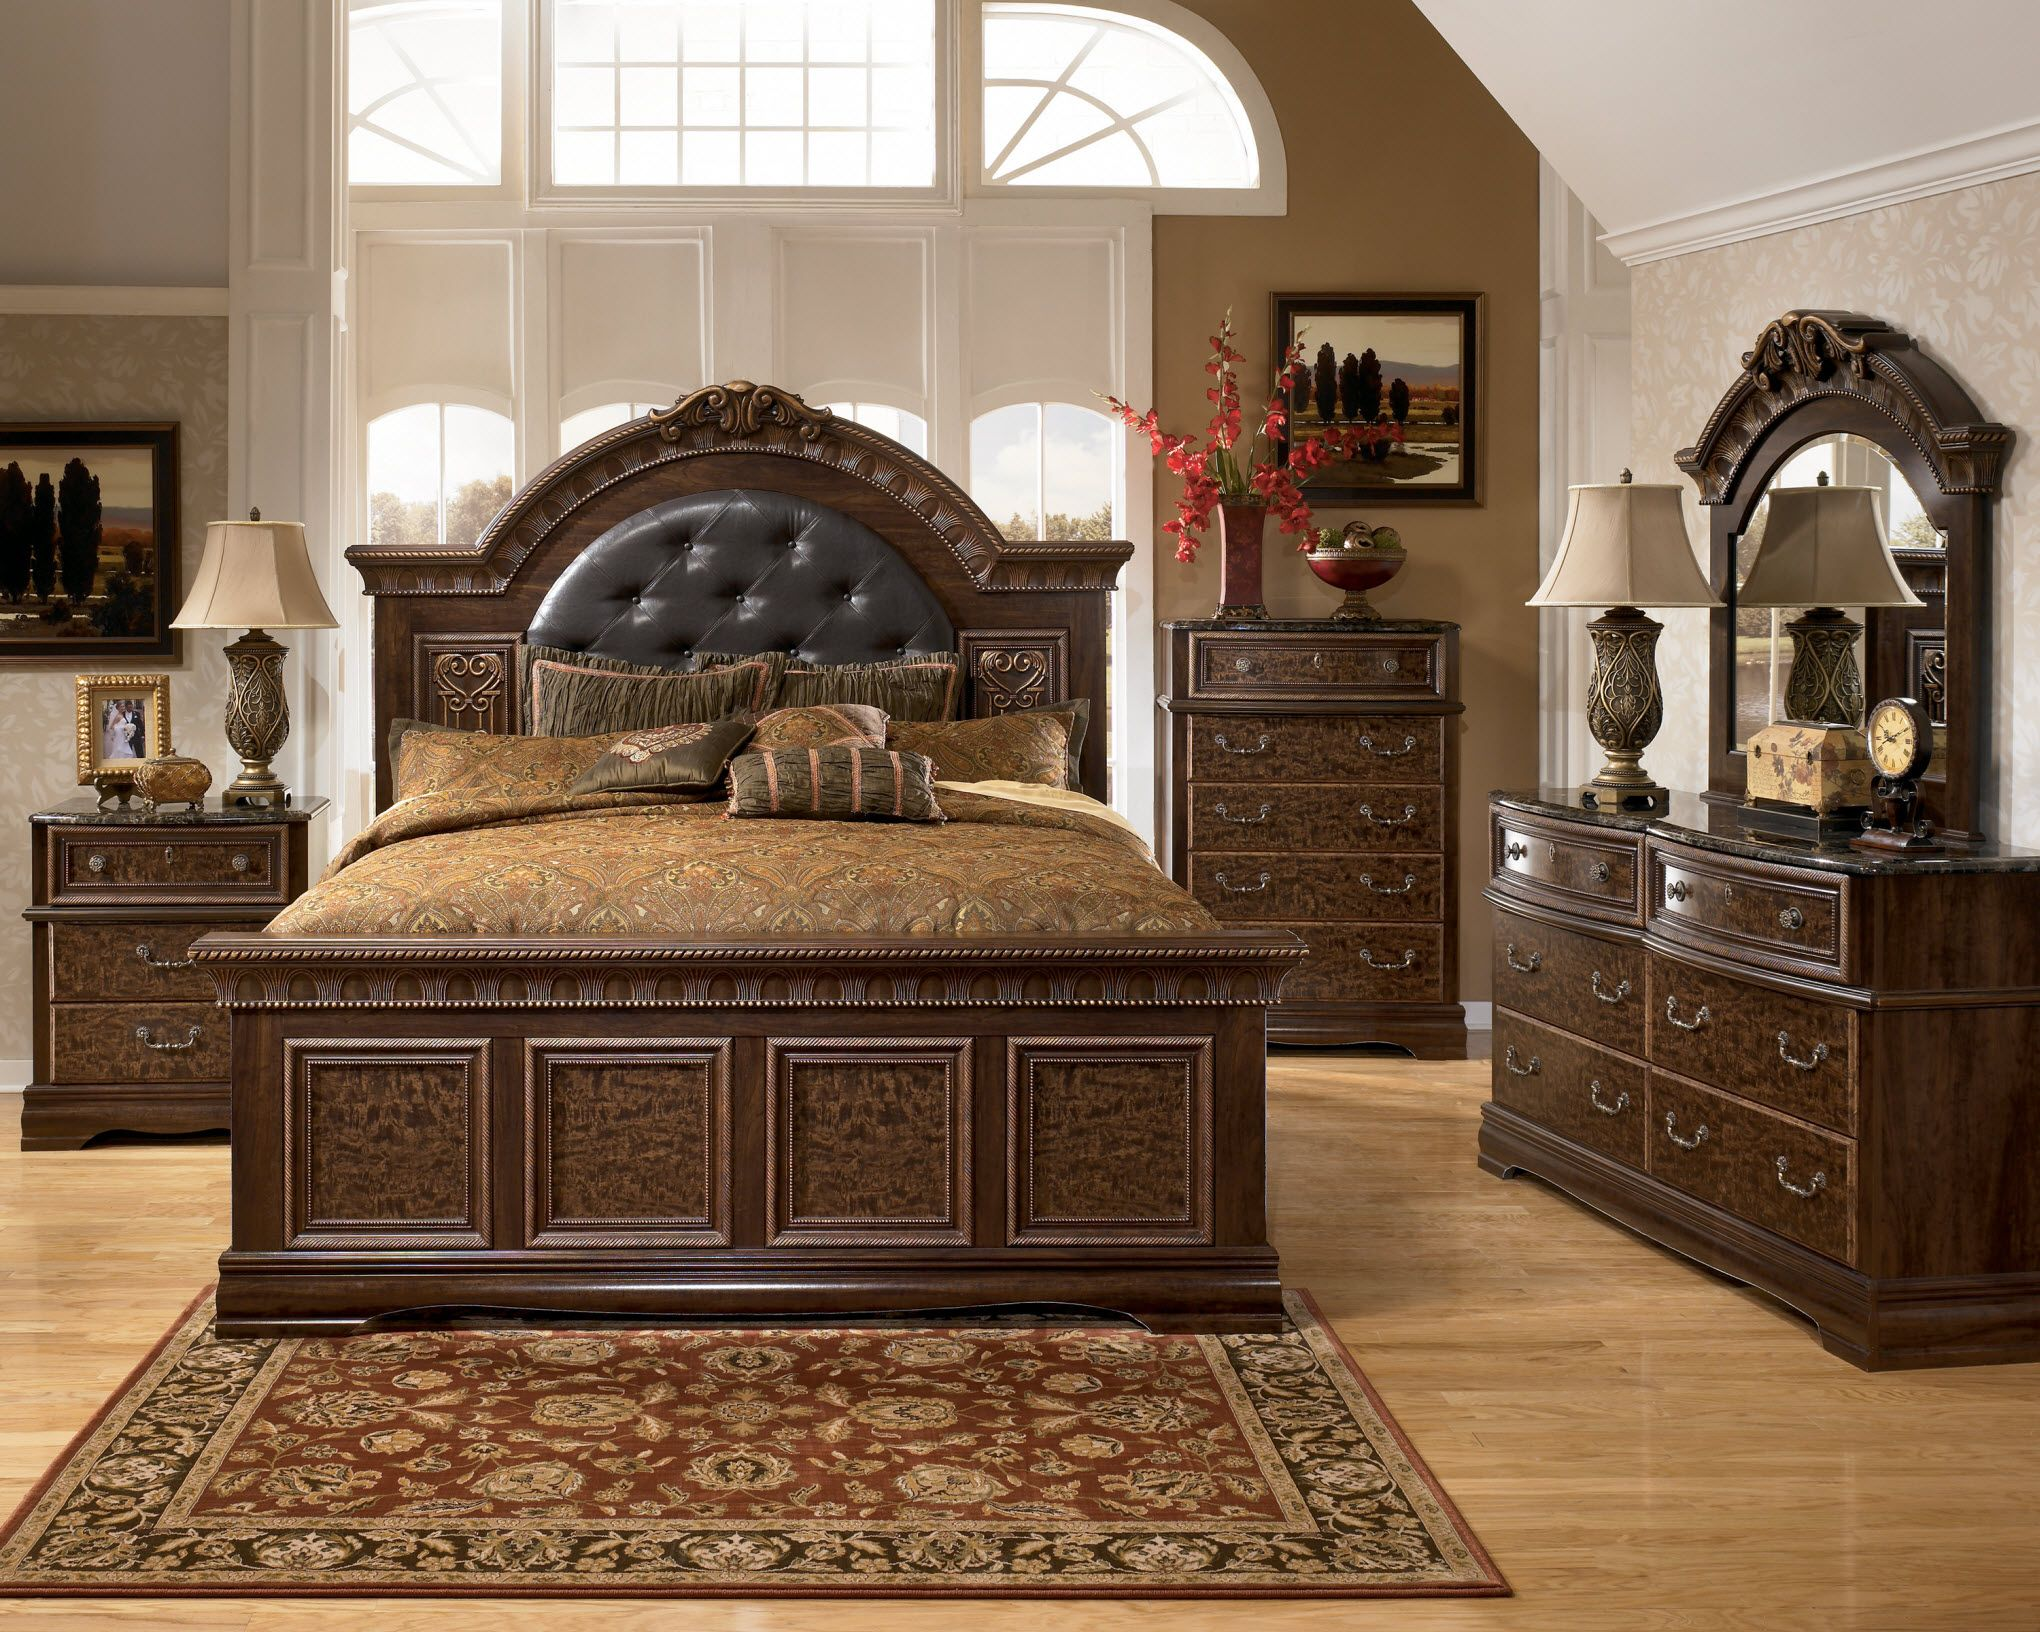 Schlafzimmermöbel Dresden Bed And Bedroom Furniture Sets Image4 Bedroom Furniture